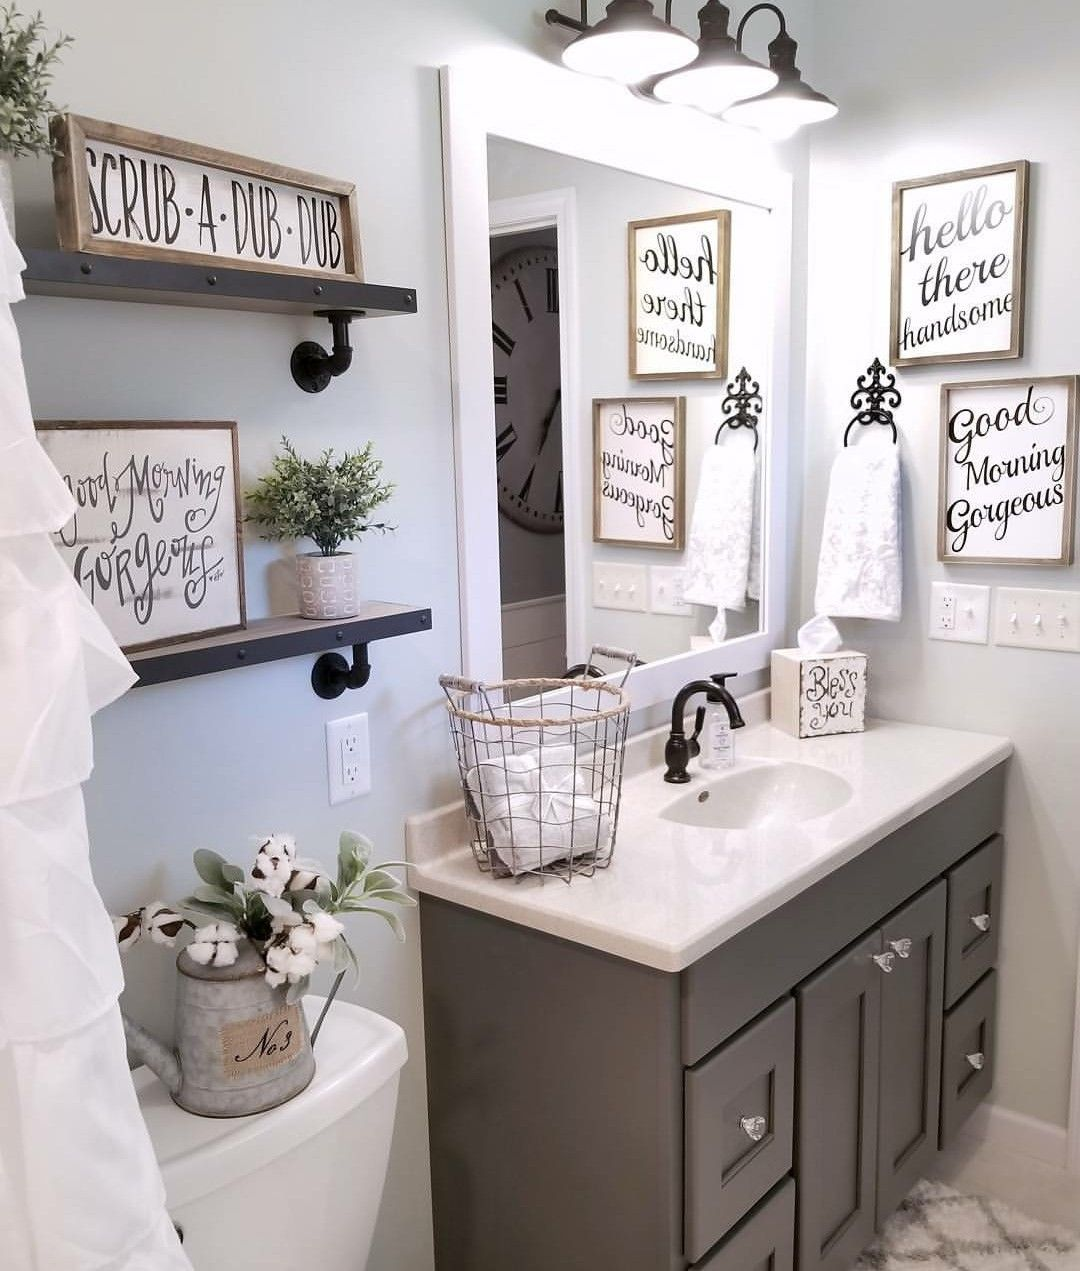 Pin By Anna Busby On New Home Pinterest Bathroom Home